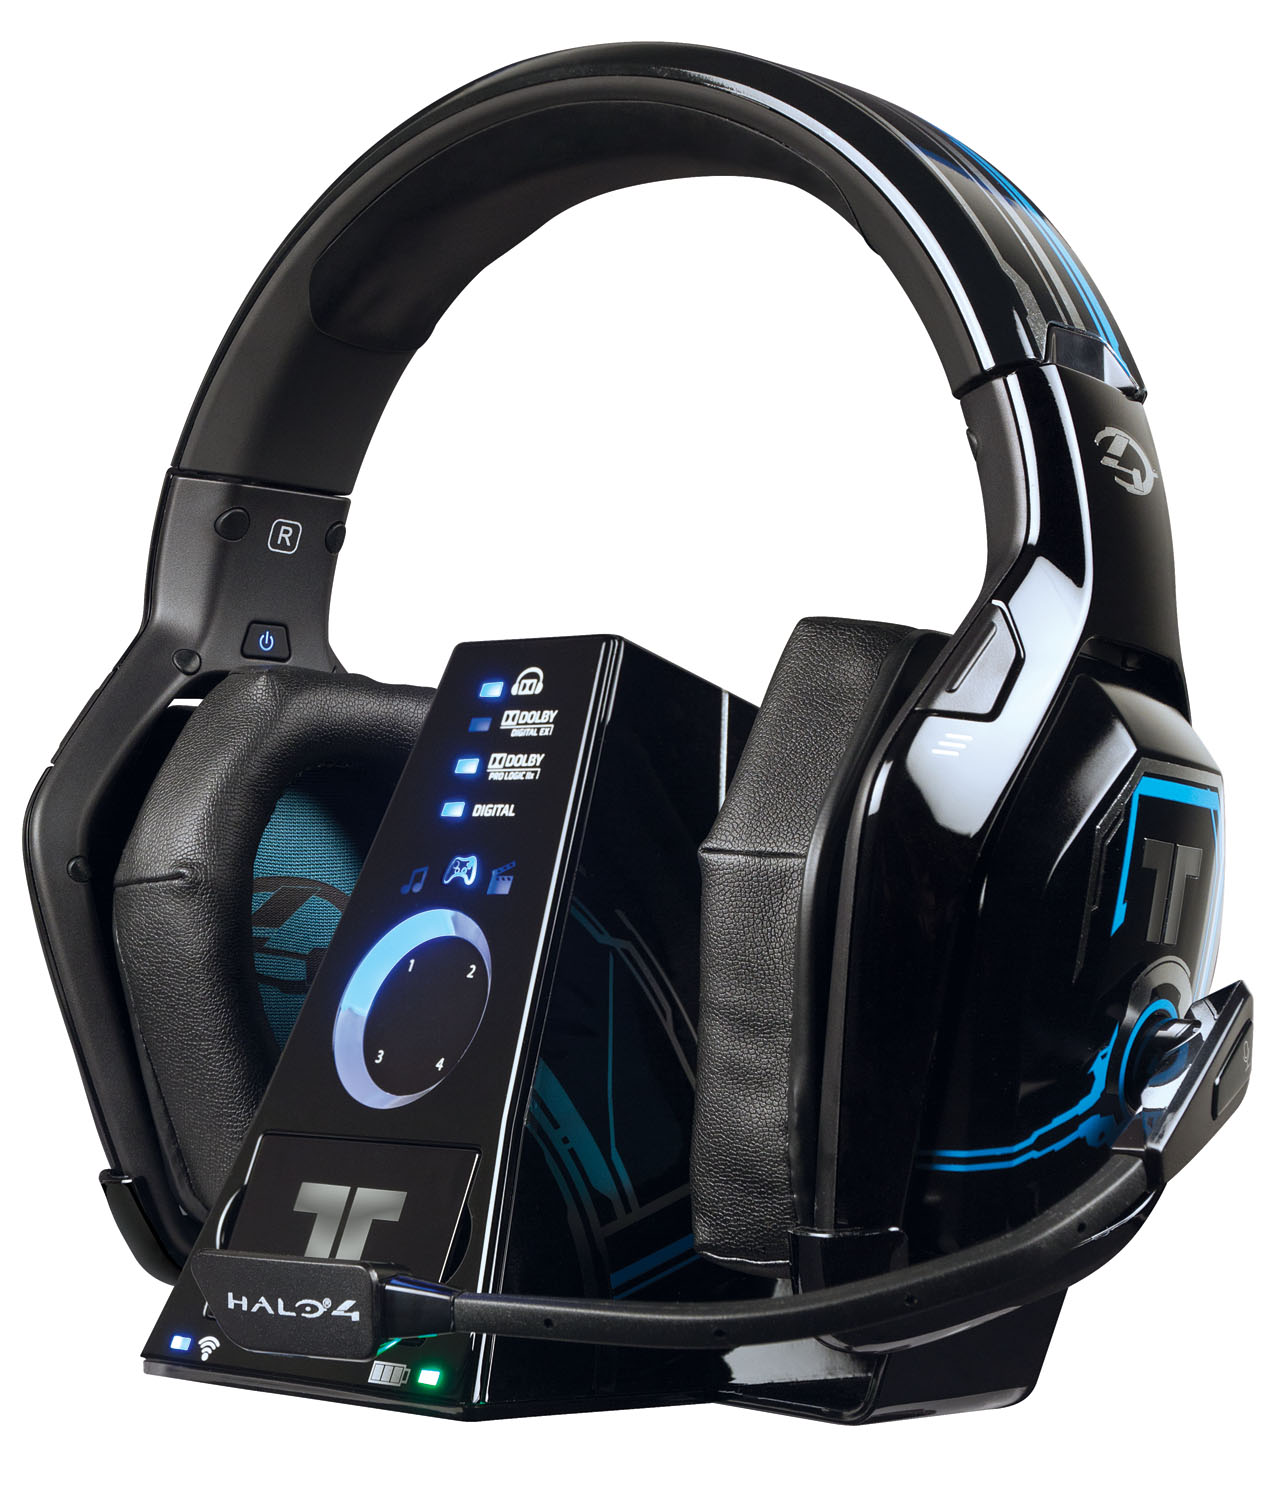 Mad Catz Ships Licensed Halo 4 Gaming Headset Fizmarble